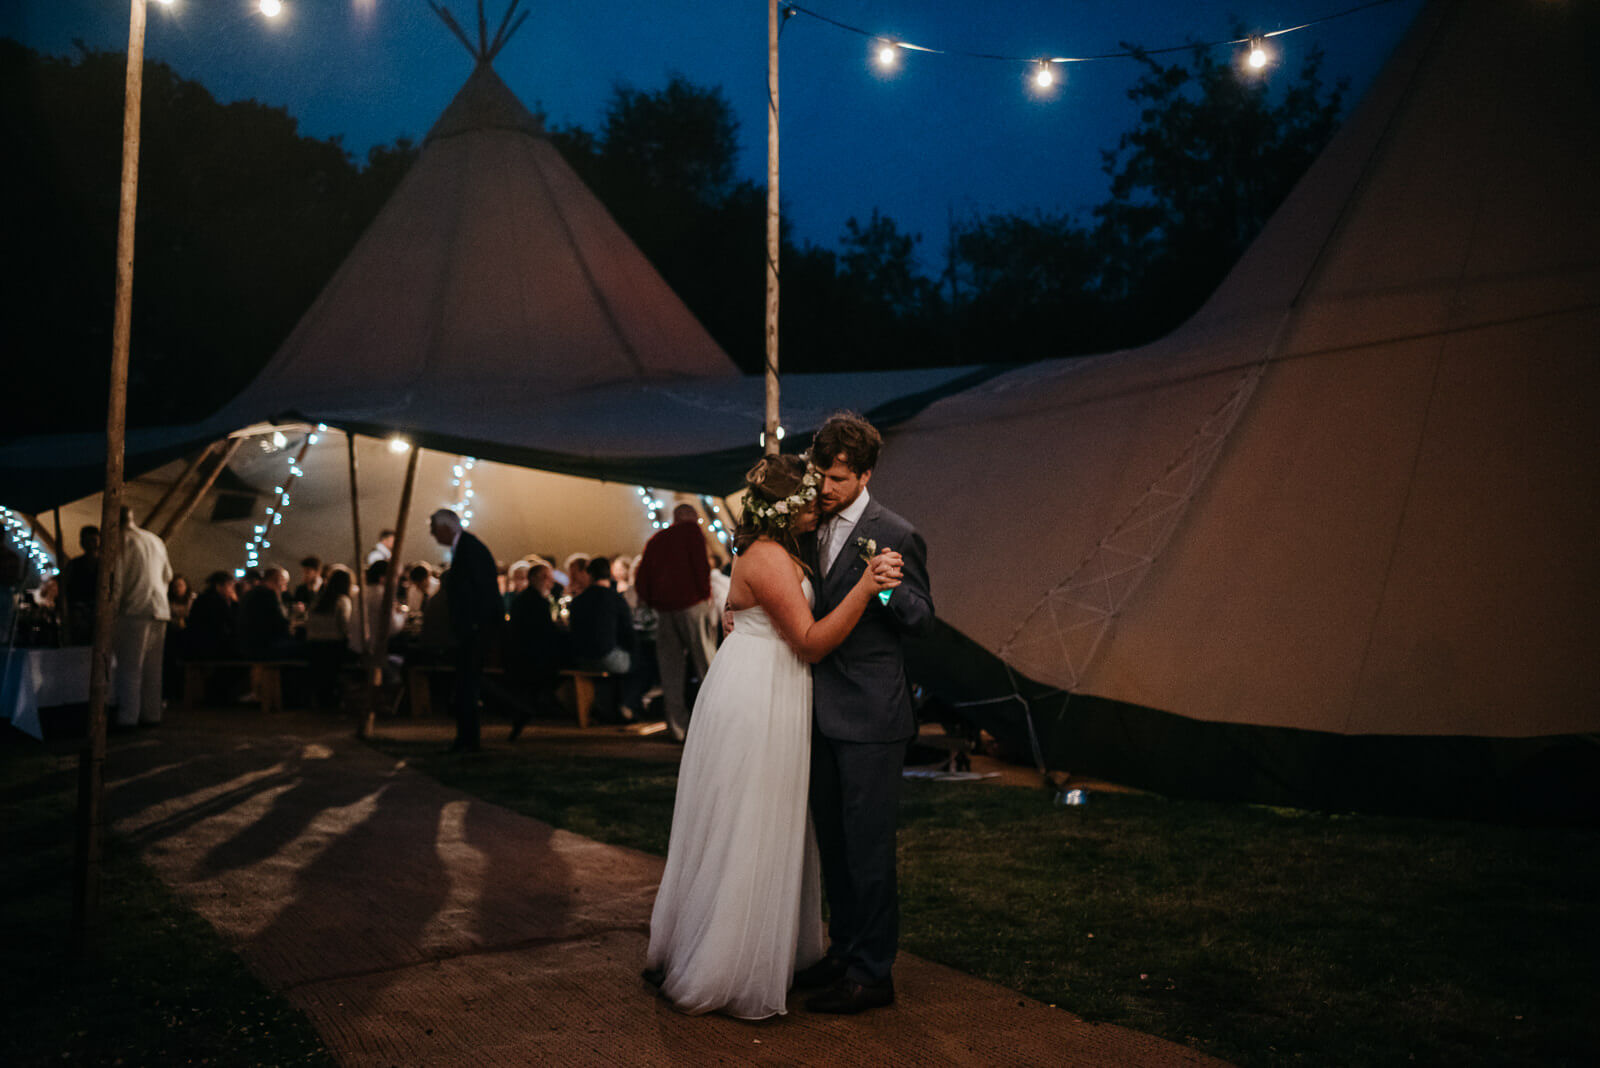 Bride and groom dancing in darkness with light coming from tipi and festoon lighting